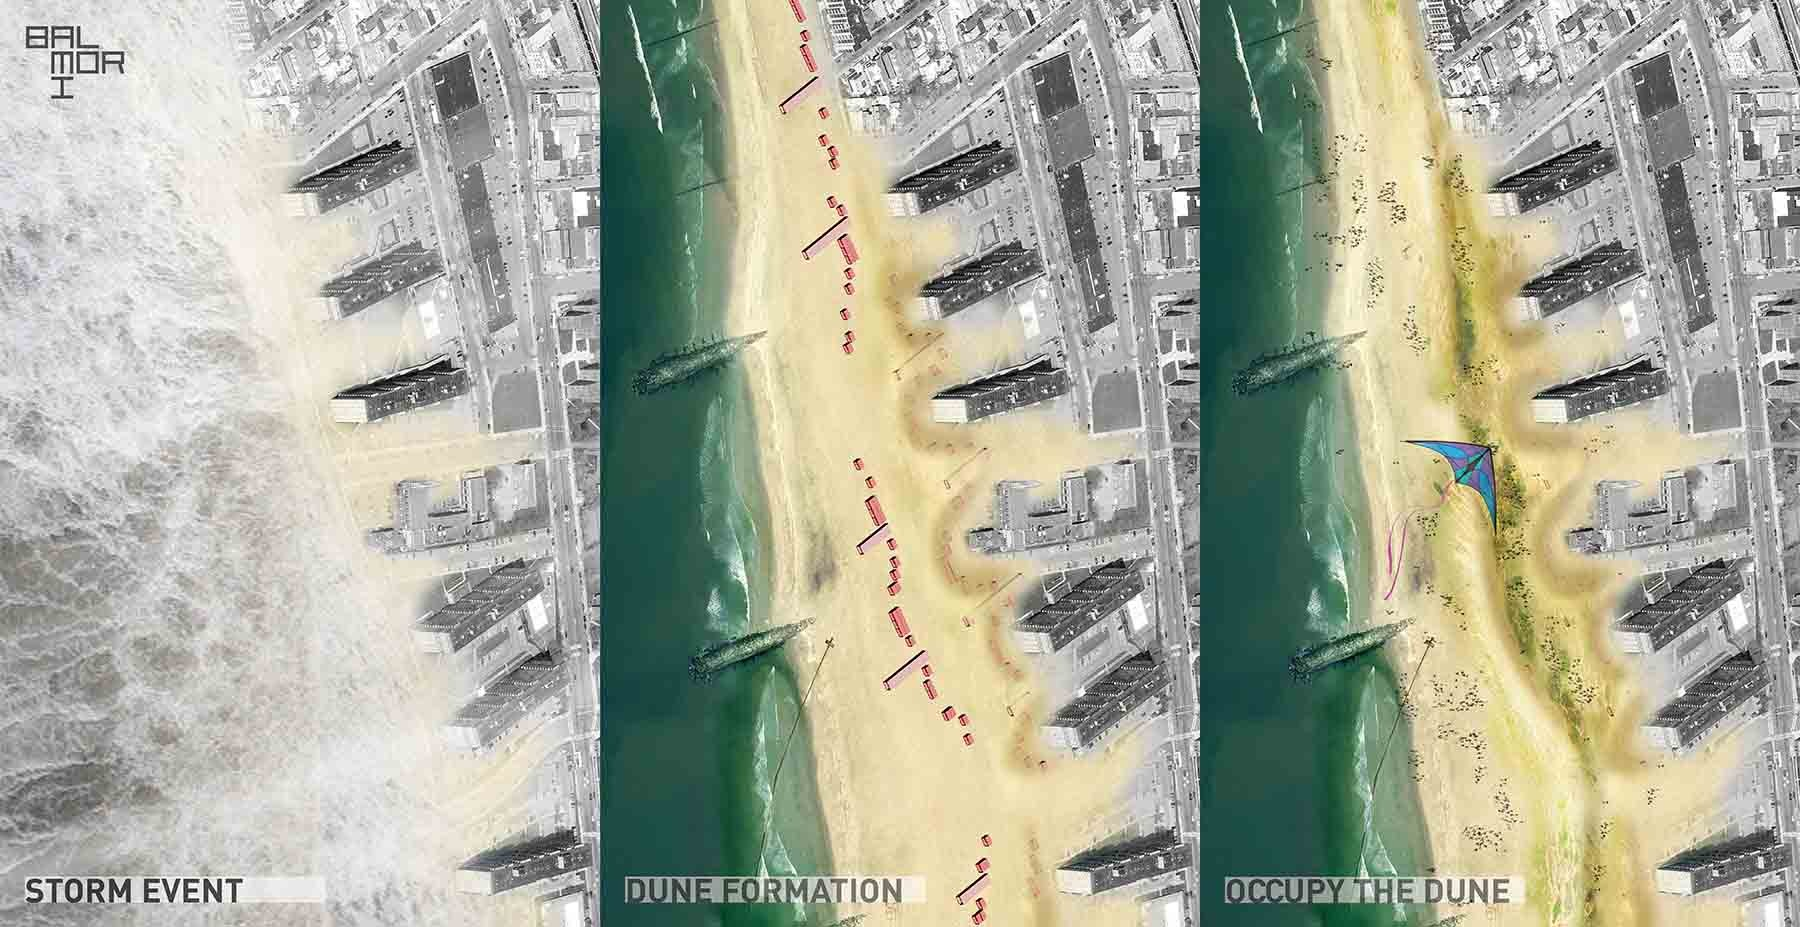 'Occupy the Dune': MOMA PS1 Rockaway Call for Ideas Winning Proposal / Balmori Associates, Courtesy of Balmori Associates